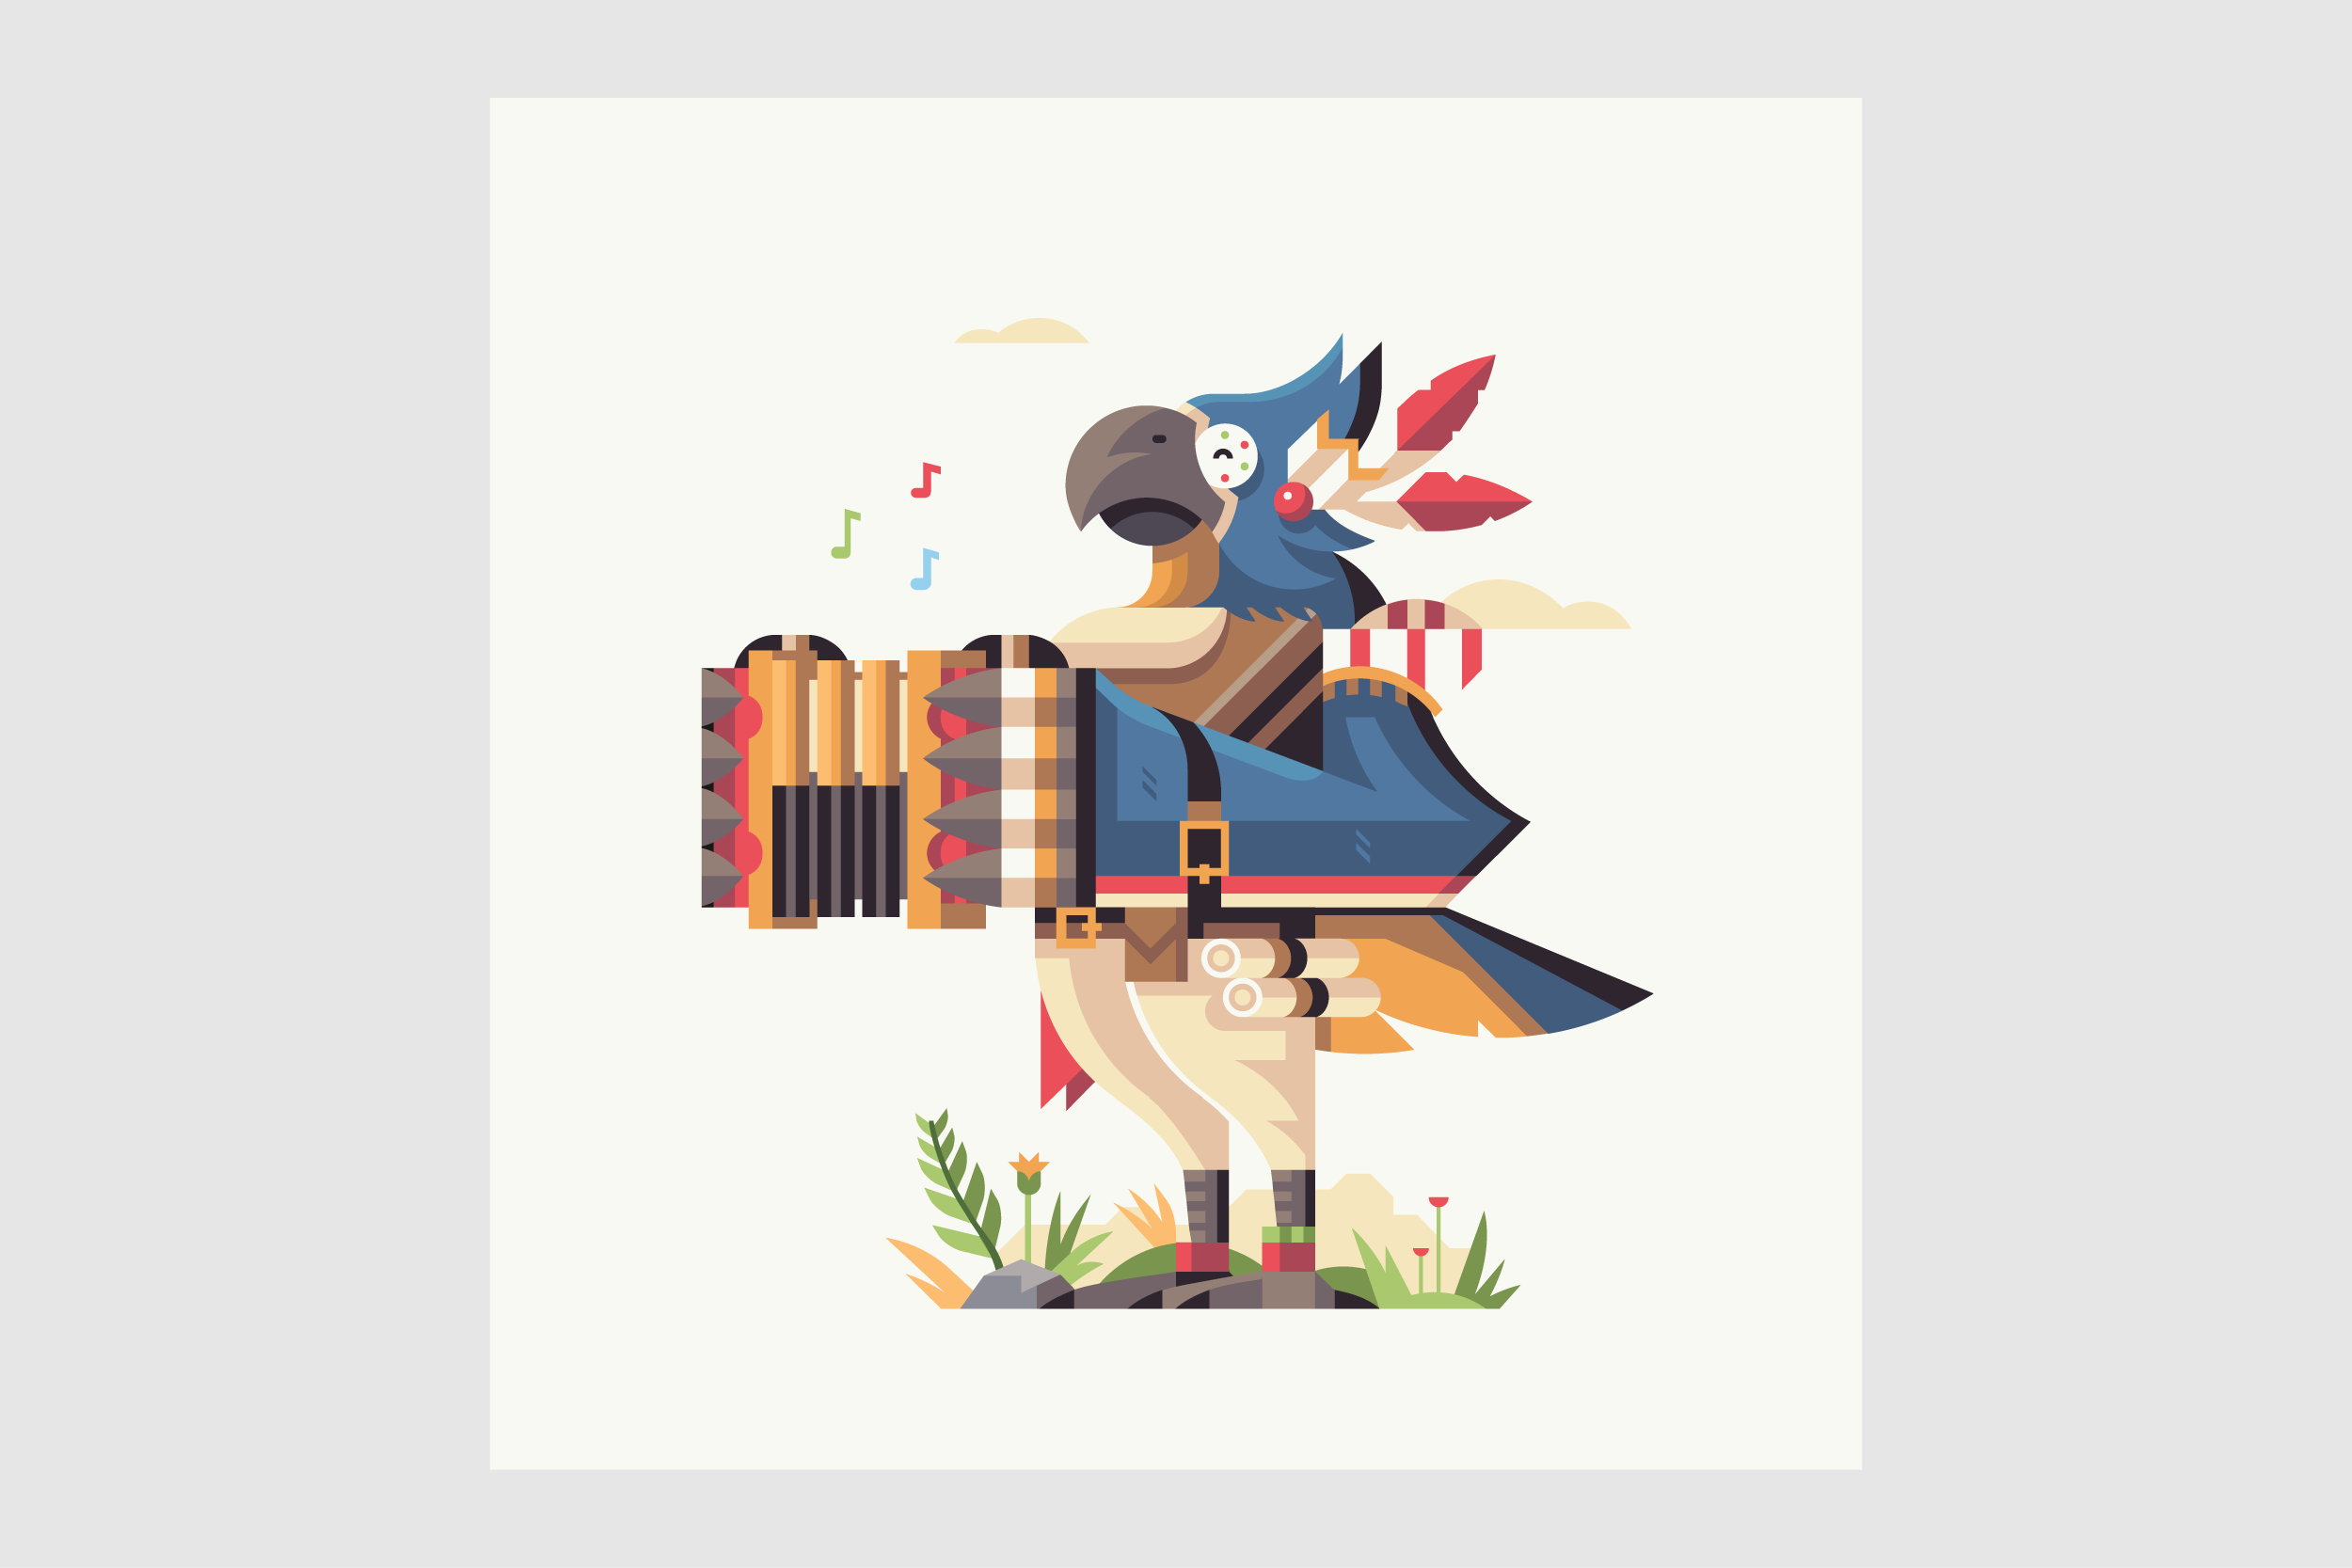 Wild series by Matt Anderson. Inspired by Zelda Breath of the Wild. Feathered Bard (Kass).